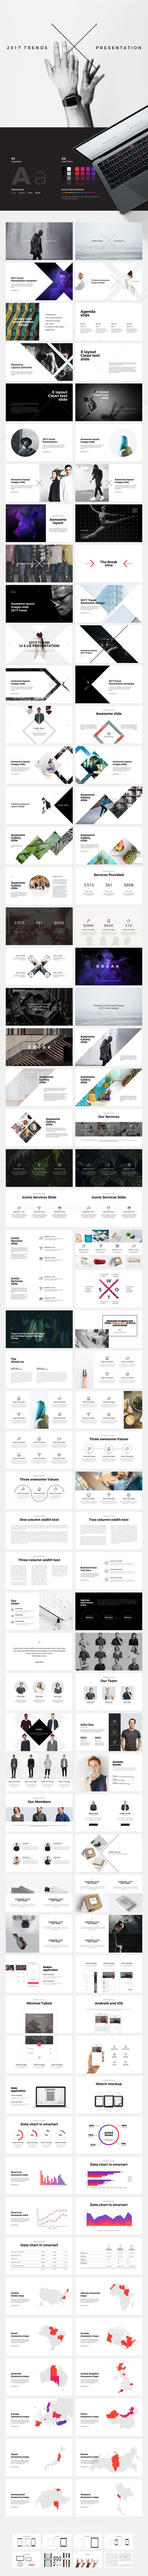 18 best images about presentation template on pinterest check out this behance project x free powerpoint keynote template toneelgroepblik Choice Image